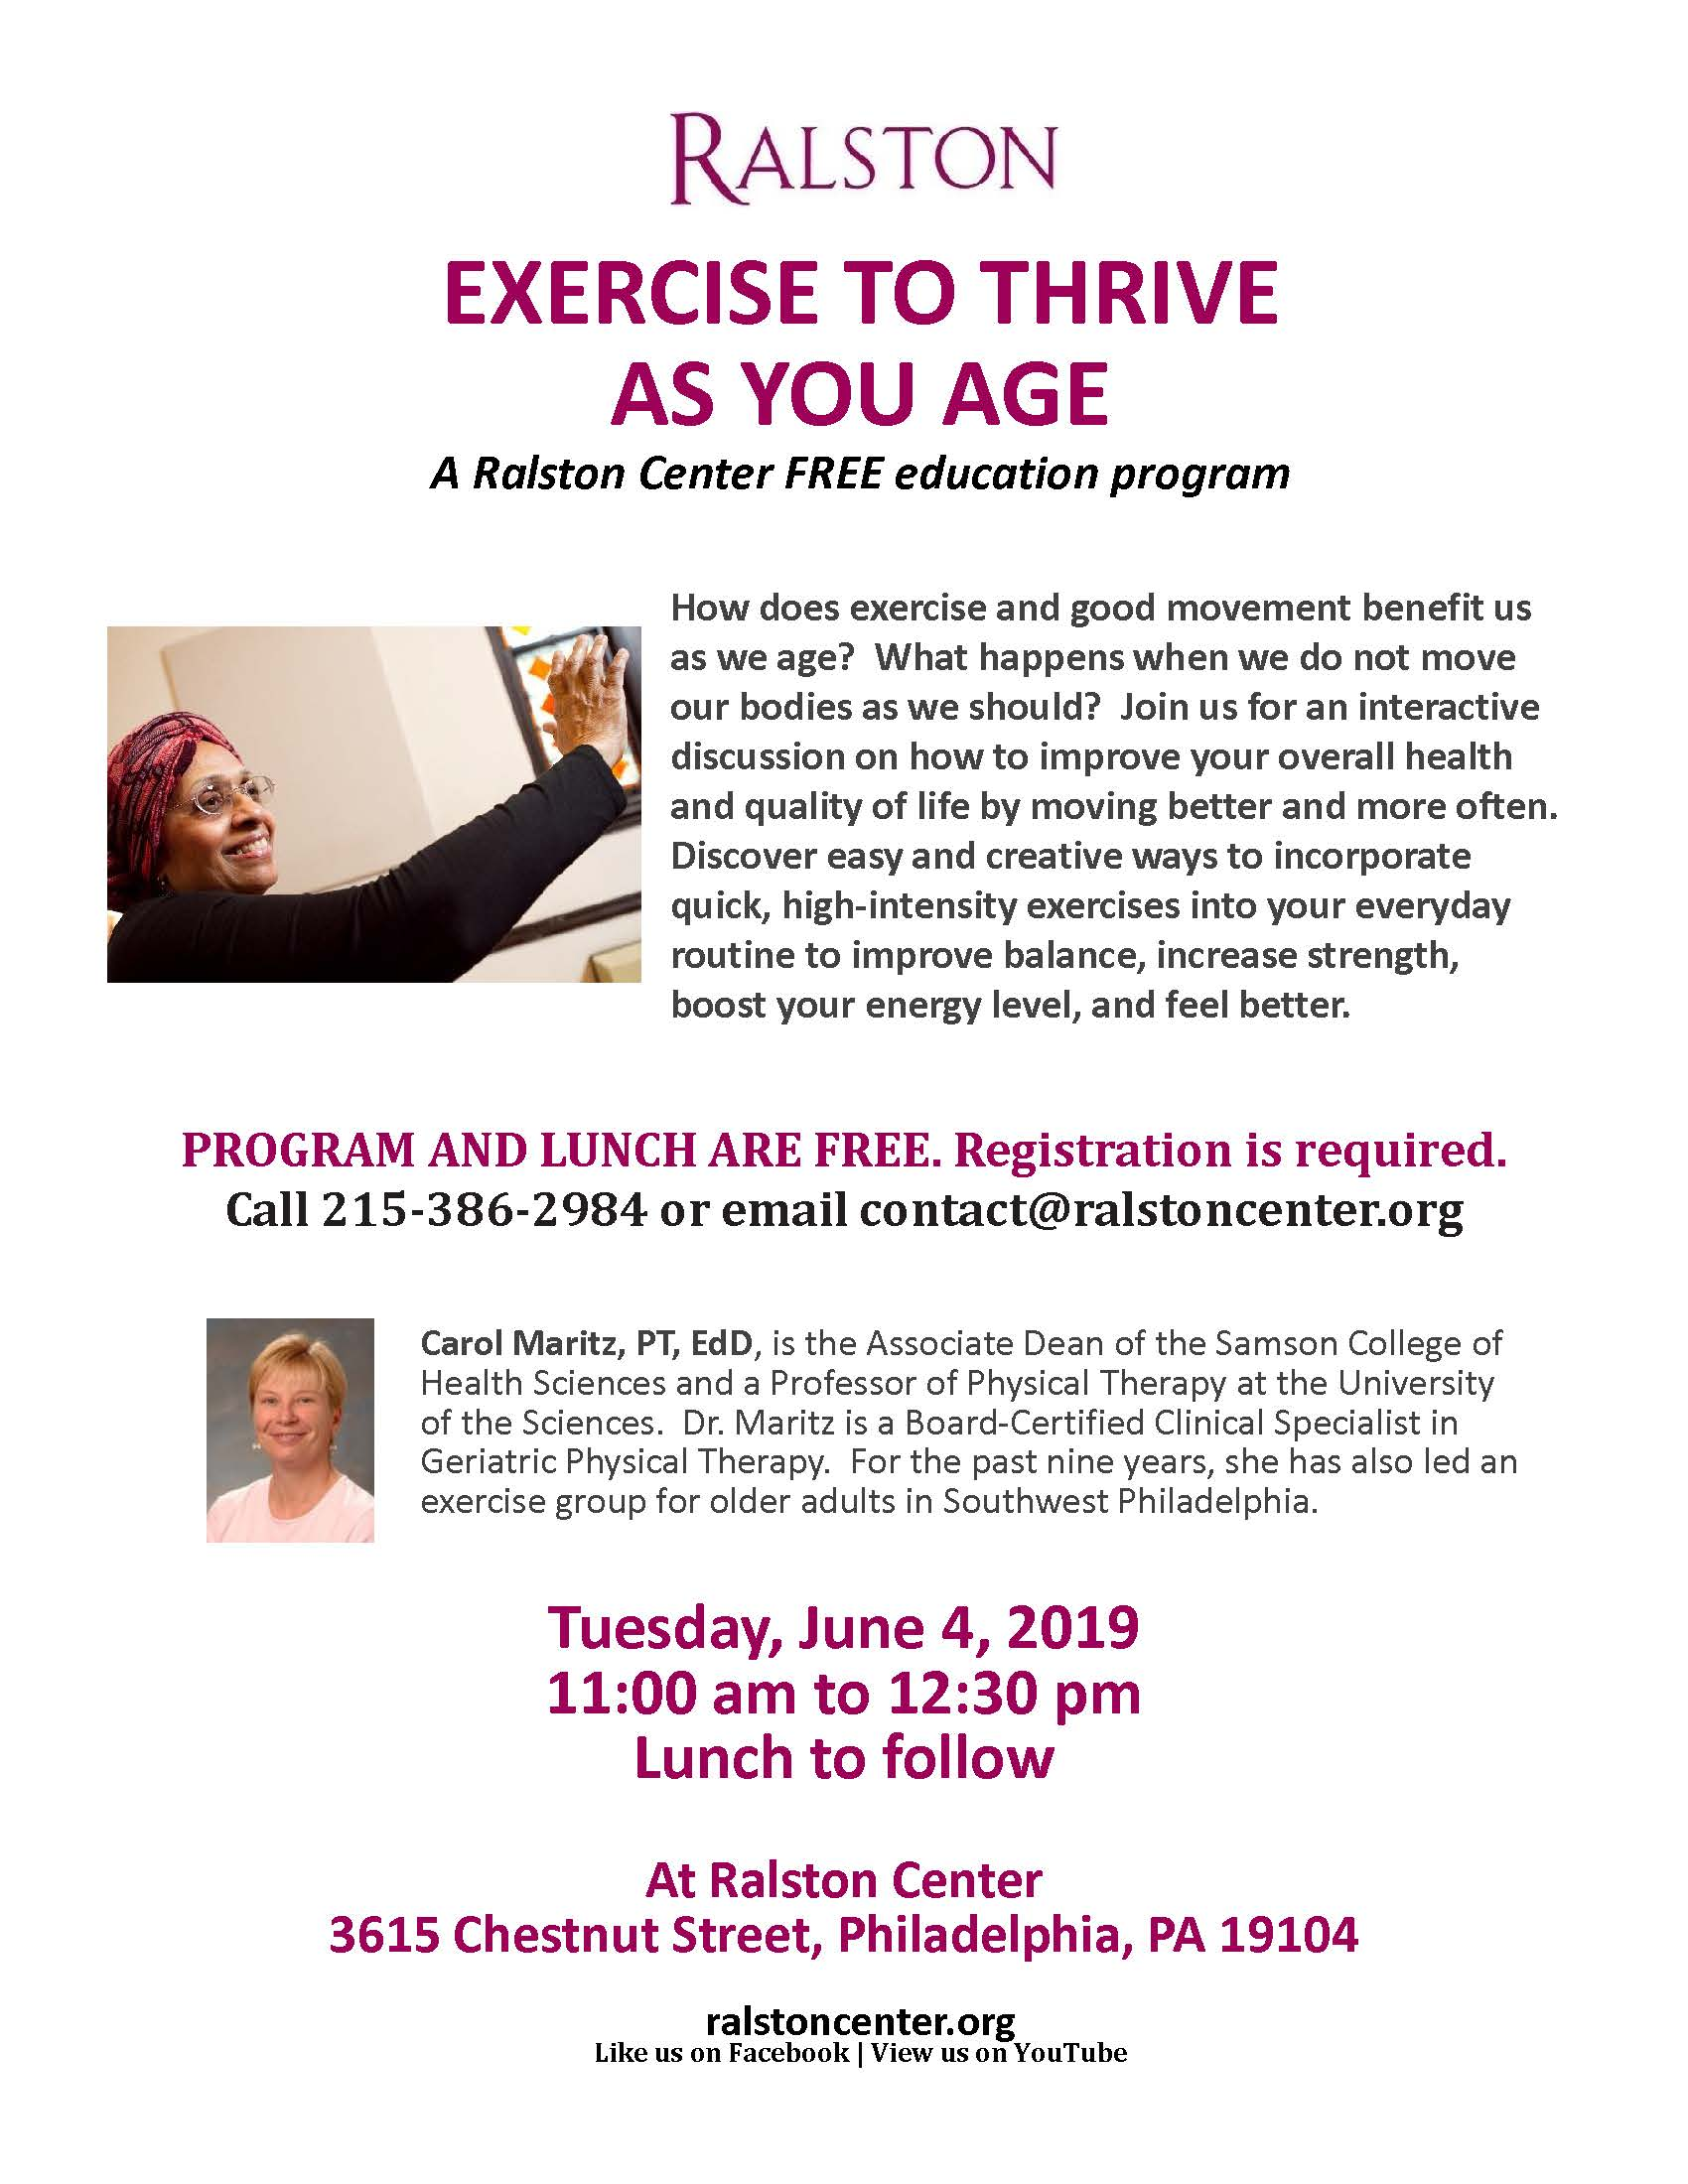 Exercise to thrive as you age – June 4, 2019 More »